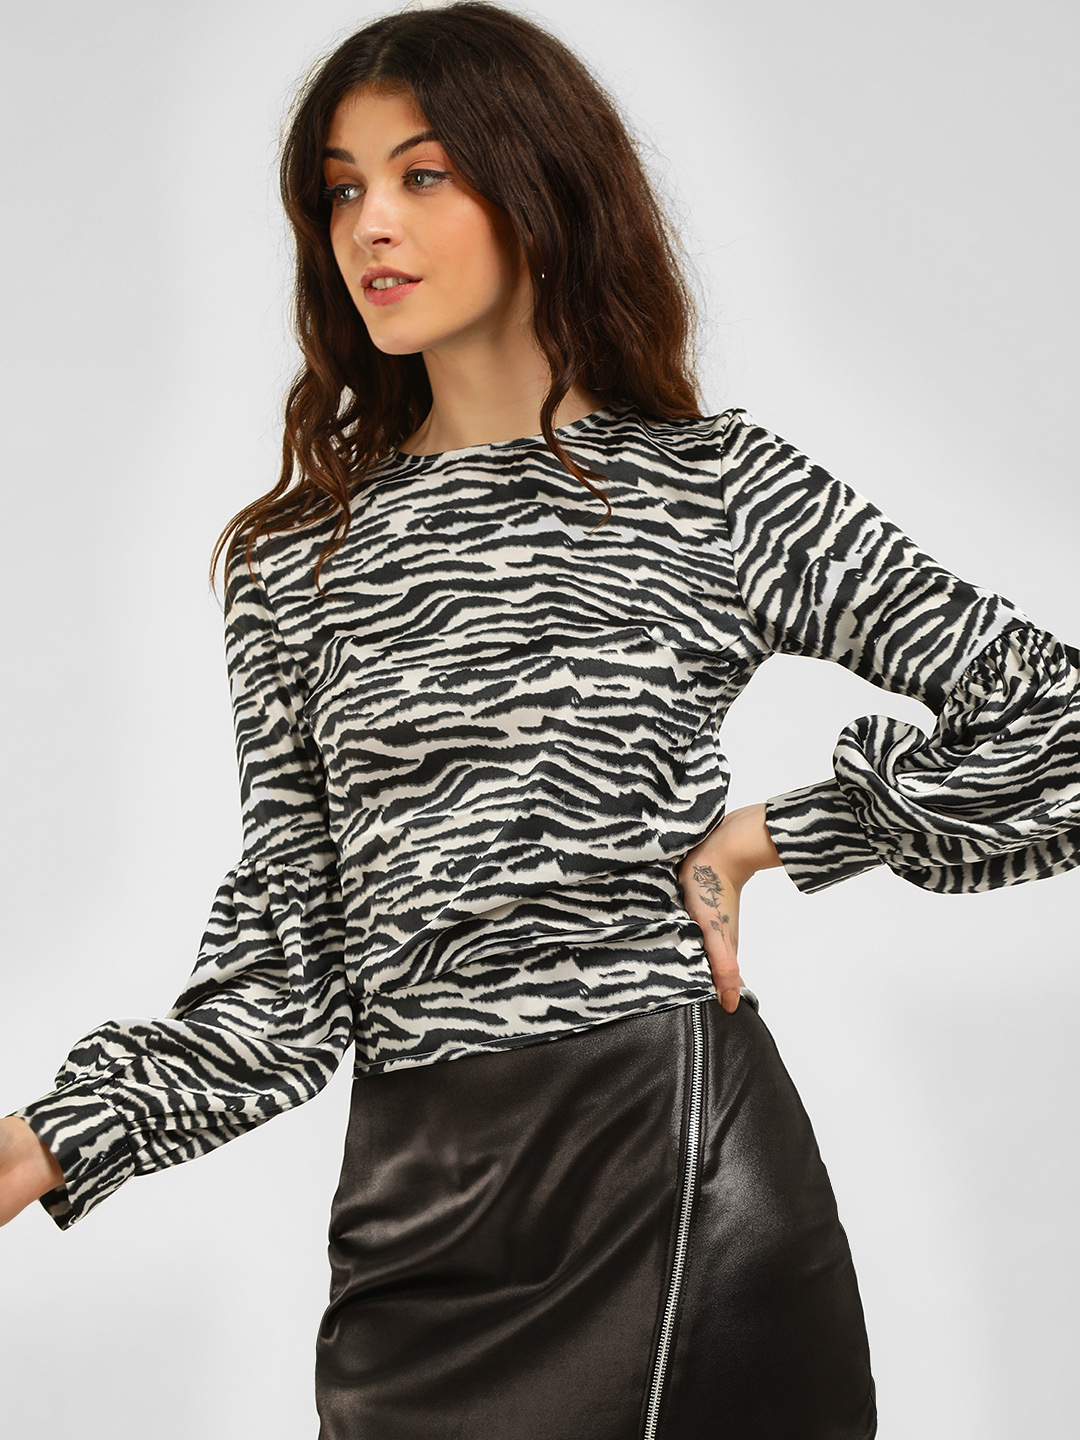 KOOVS Black/White Zebra Print Back Tie Top 1